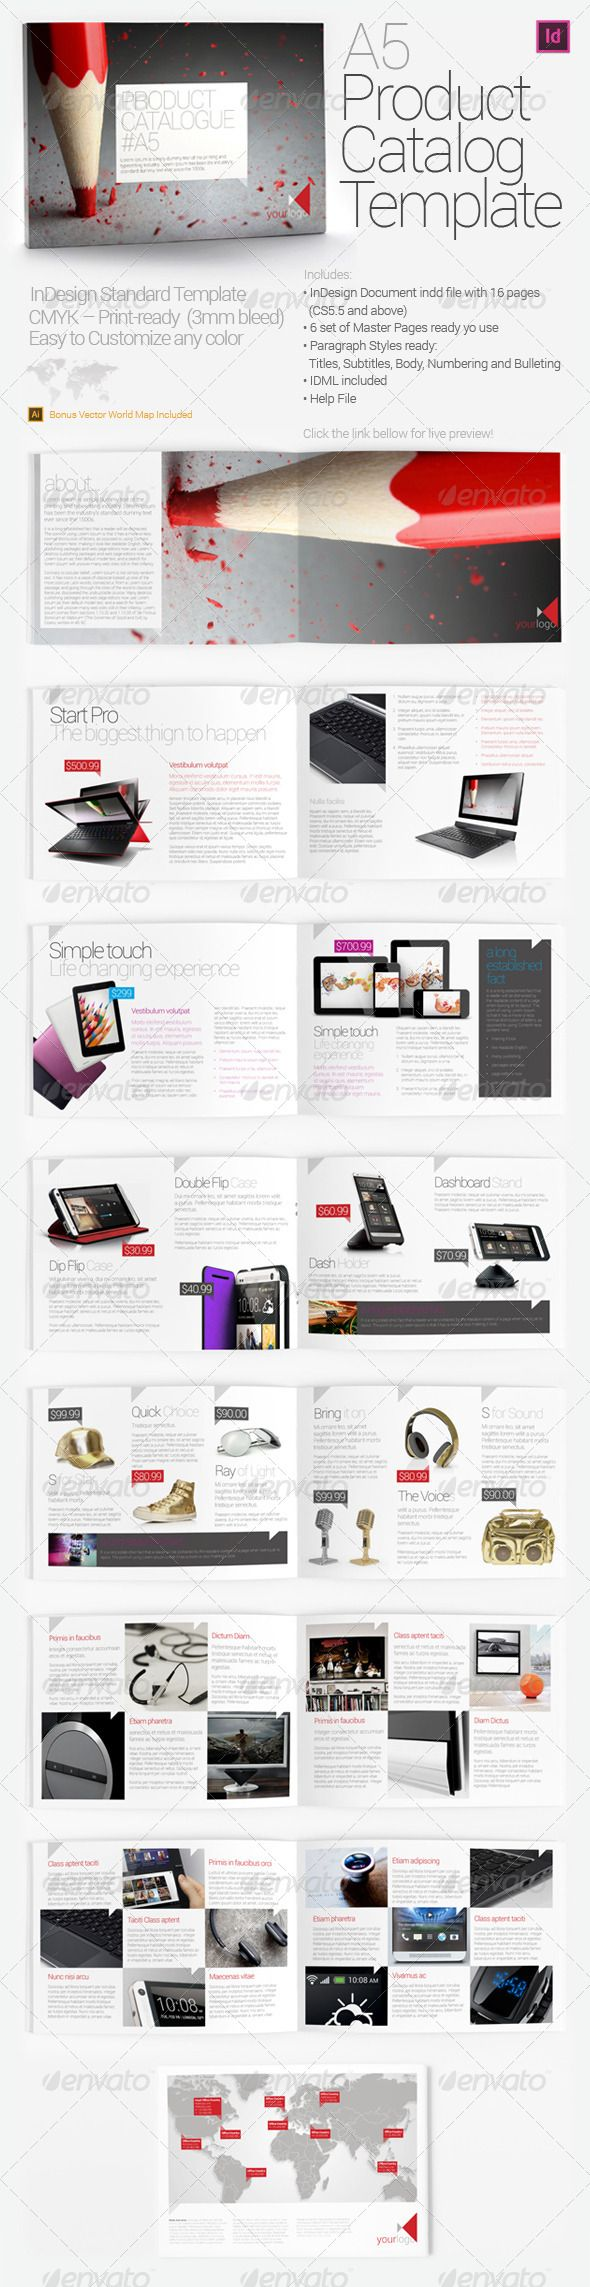 A5 Product Catalog Template | Product catalog template, Brochure ...